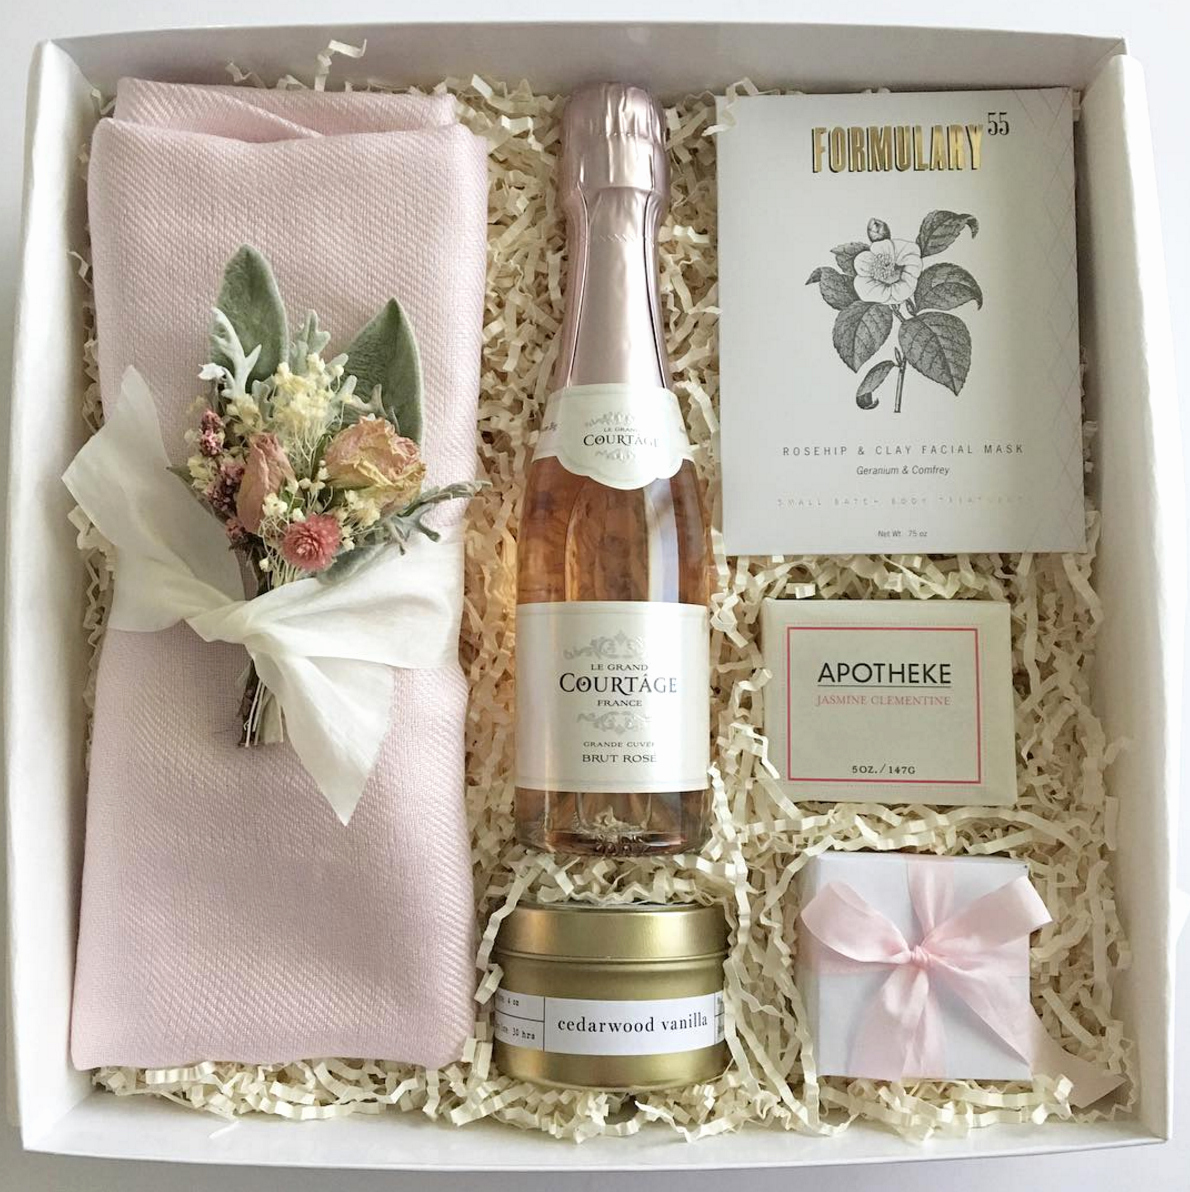 Bridesmaid Invitation Box Ideas Elegant Bridesmaid Gift Box or Bridesmaid Proposal Blush and Gold